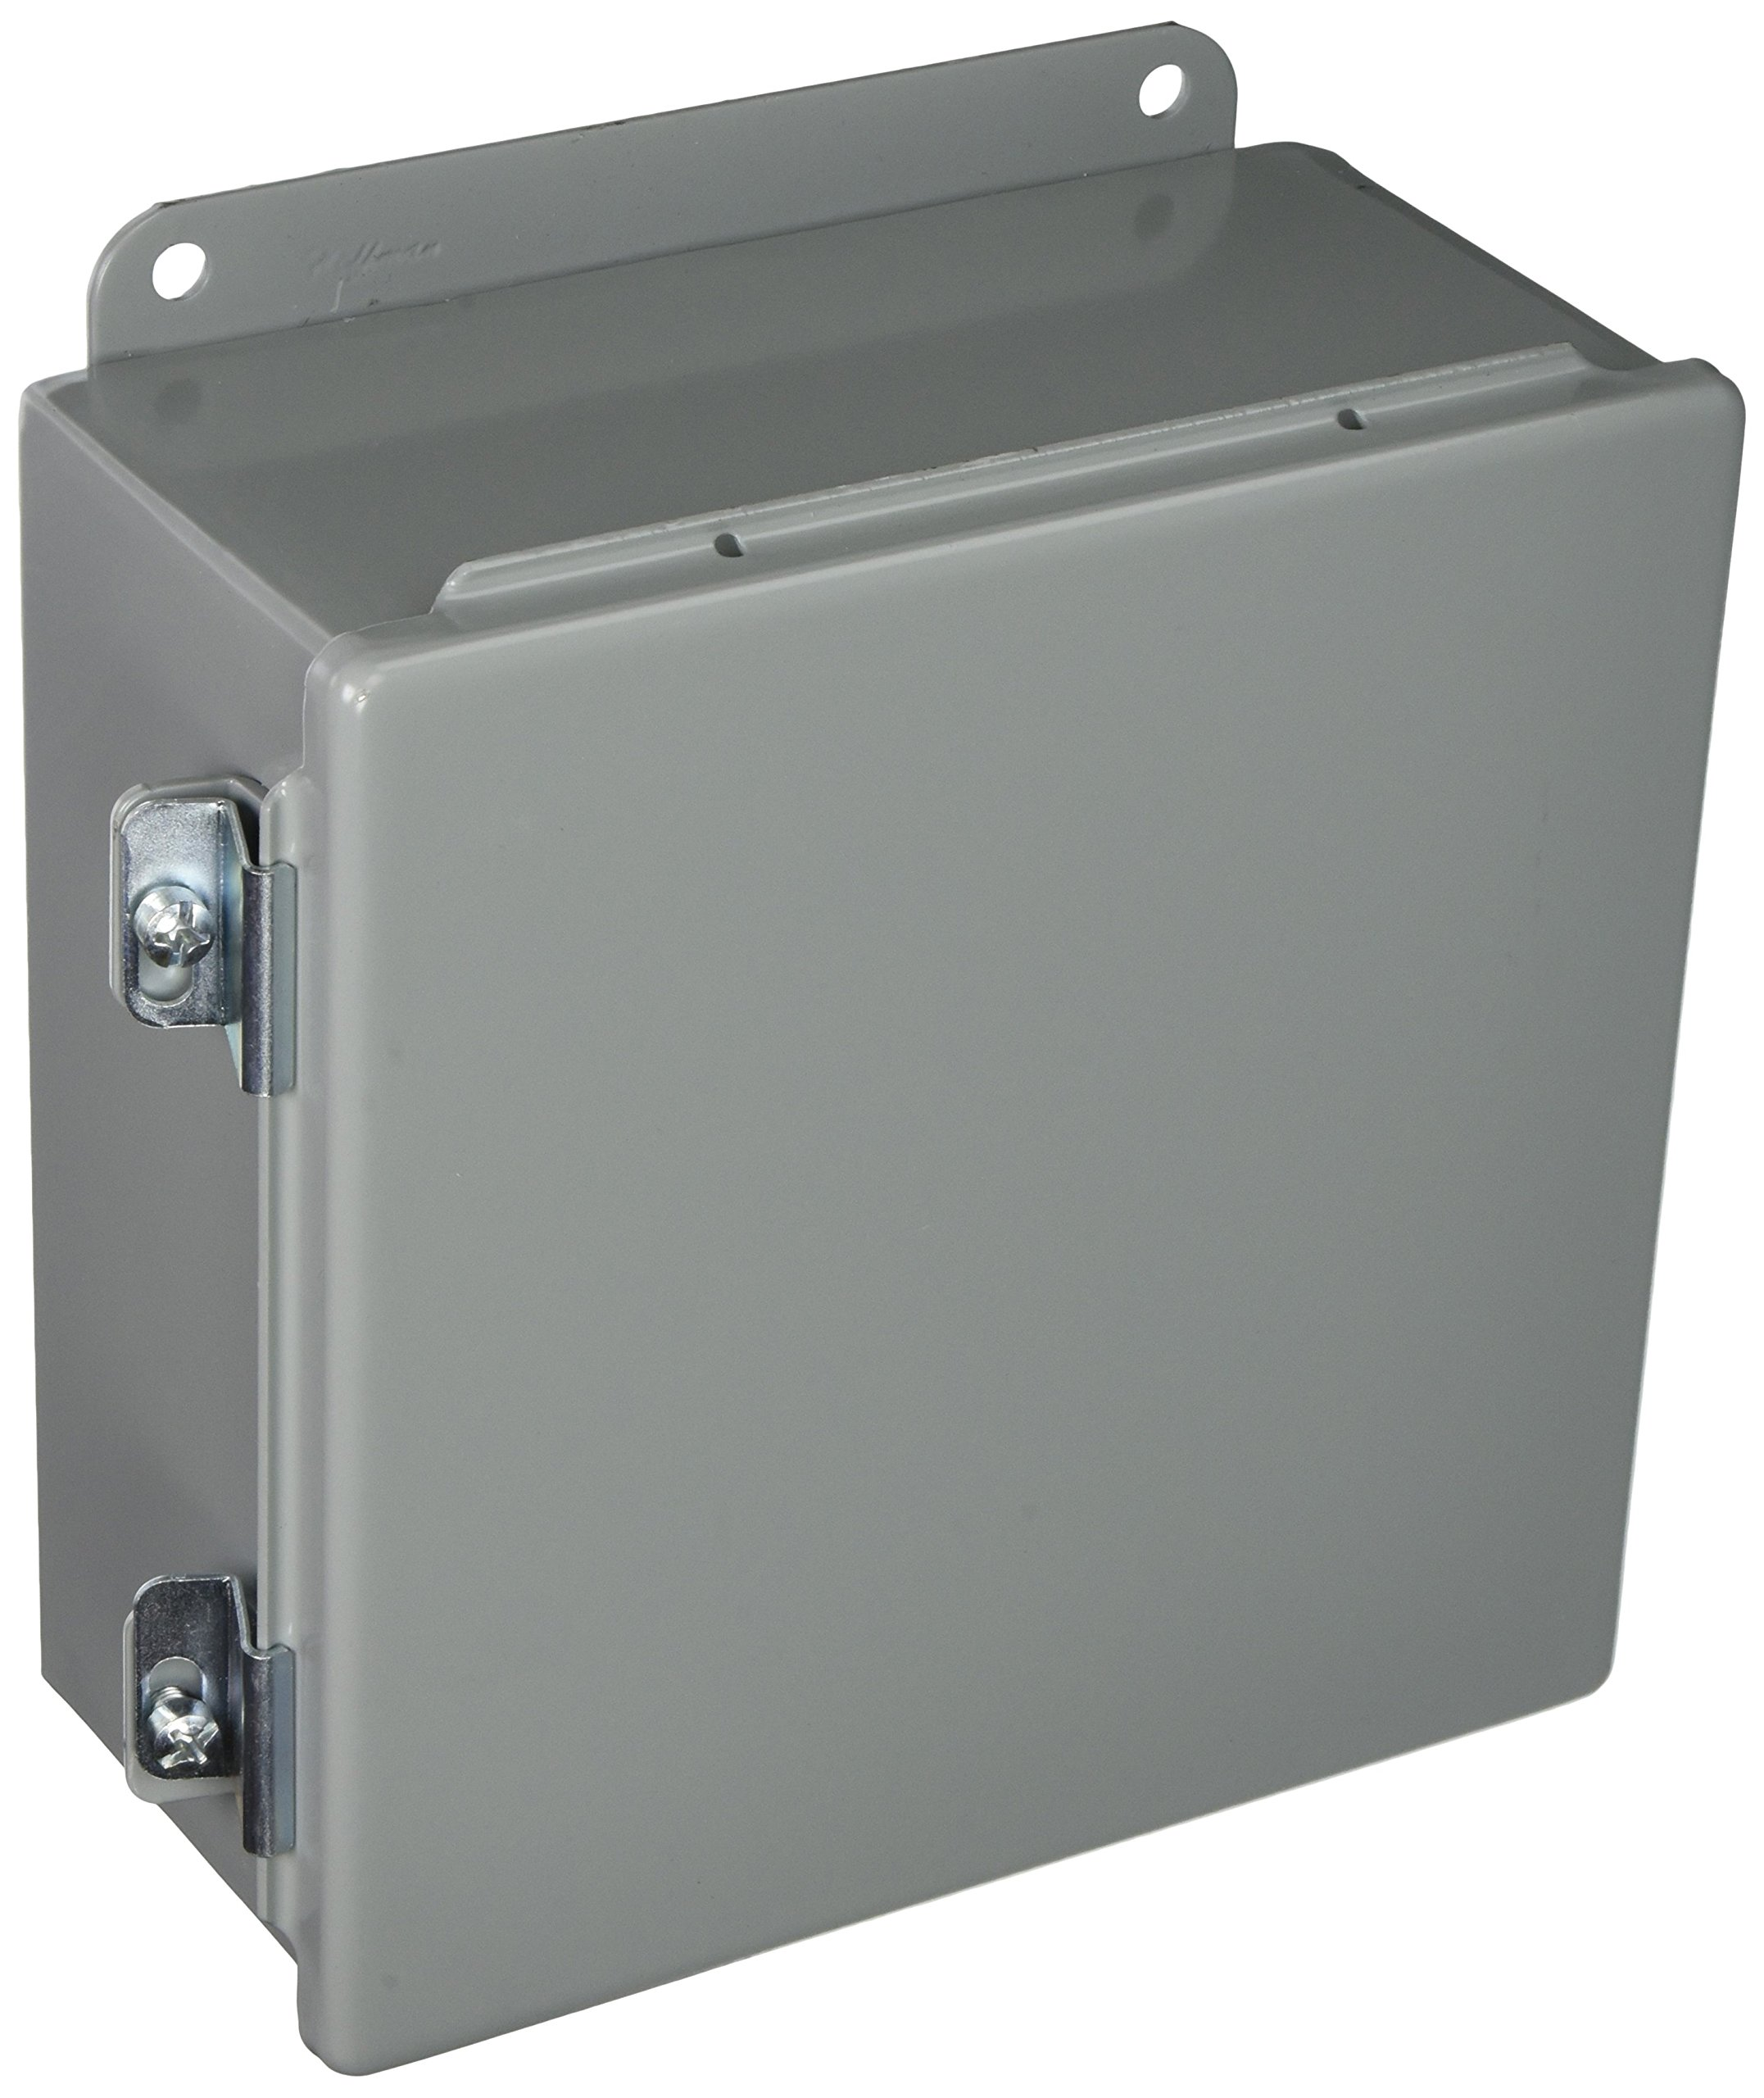 Hoffman A808CH J Box, NEMA 12 Hinged Cover, Steel, 8'' x 8'' x 4'', Gray